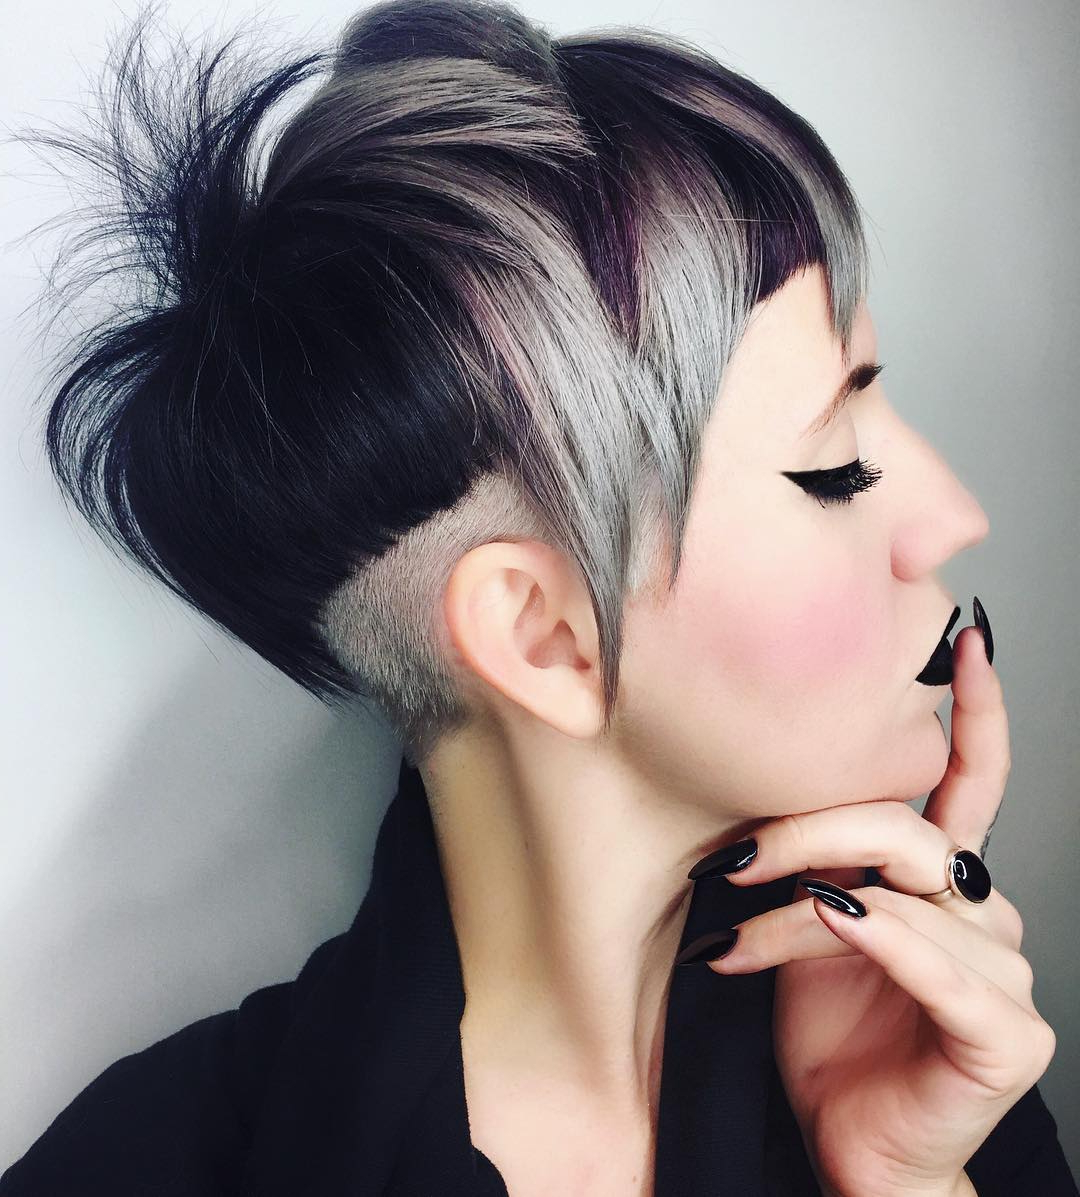 10 Latest Pixie Haircut For Women – 2018 Short Haircut Ideas With A For Razor Cut Short Hairstyles (View 7 of 25)